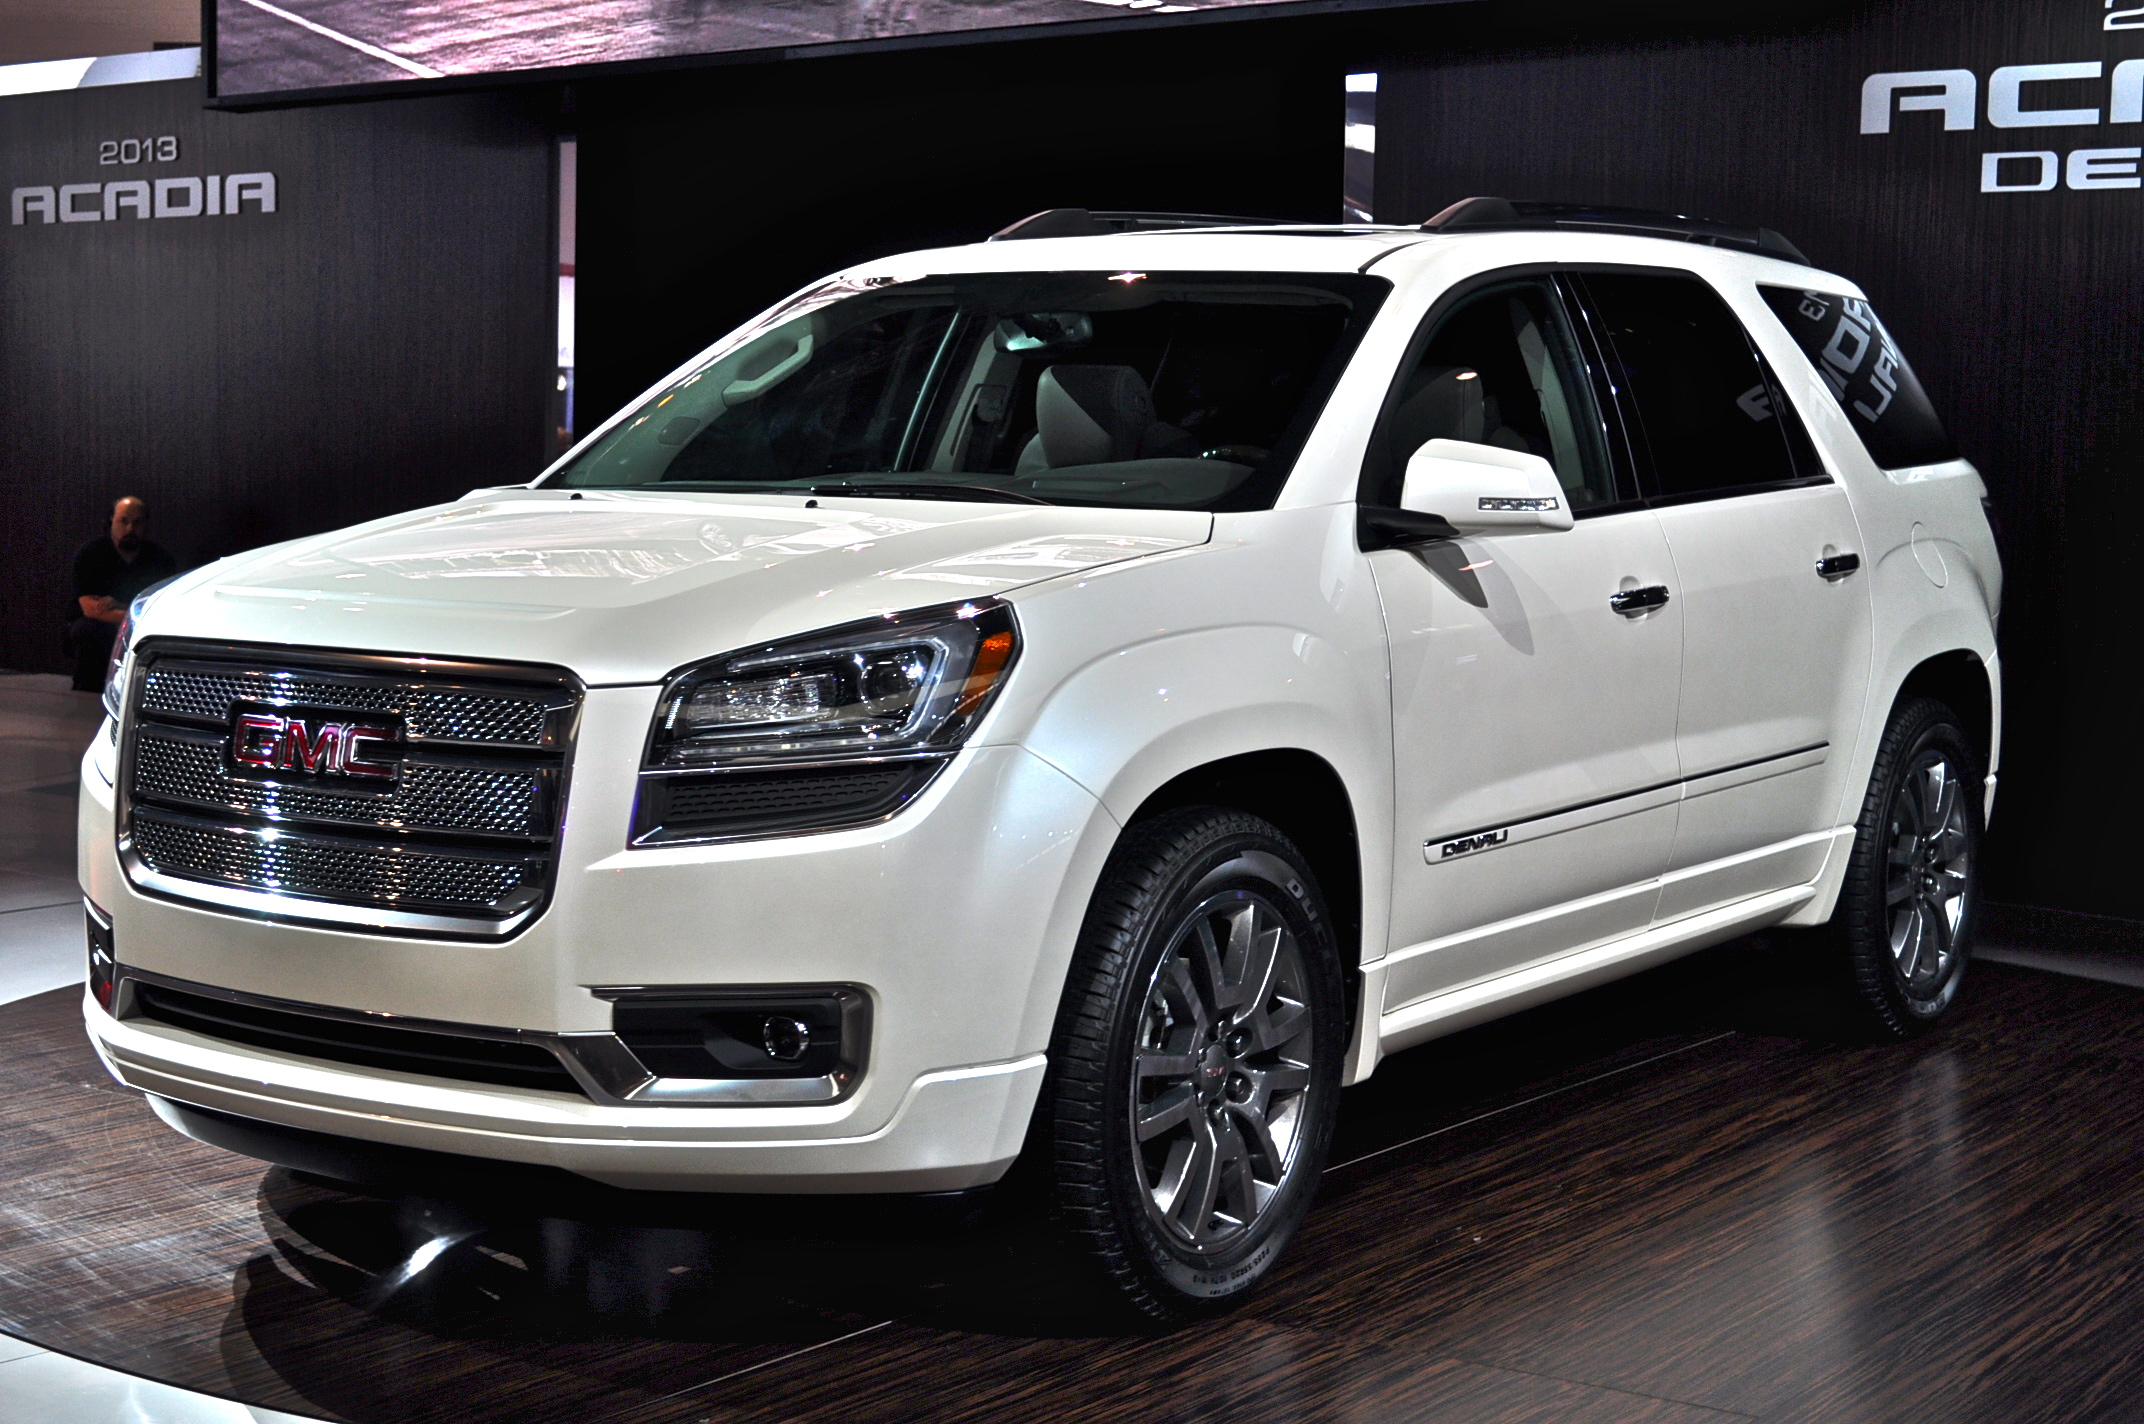 information image and suv vehicle acadia aspx news denali gmc